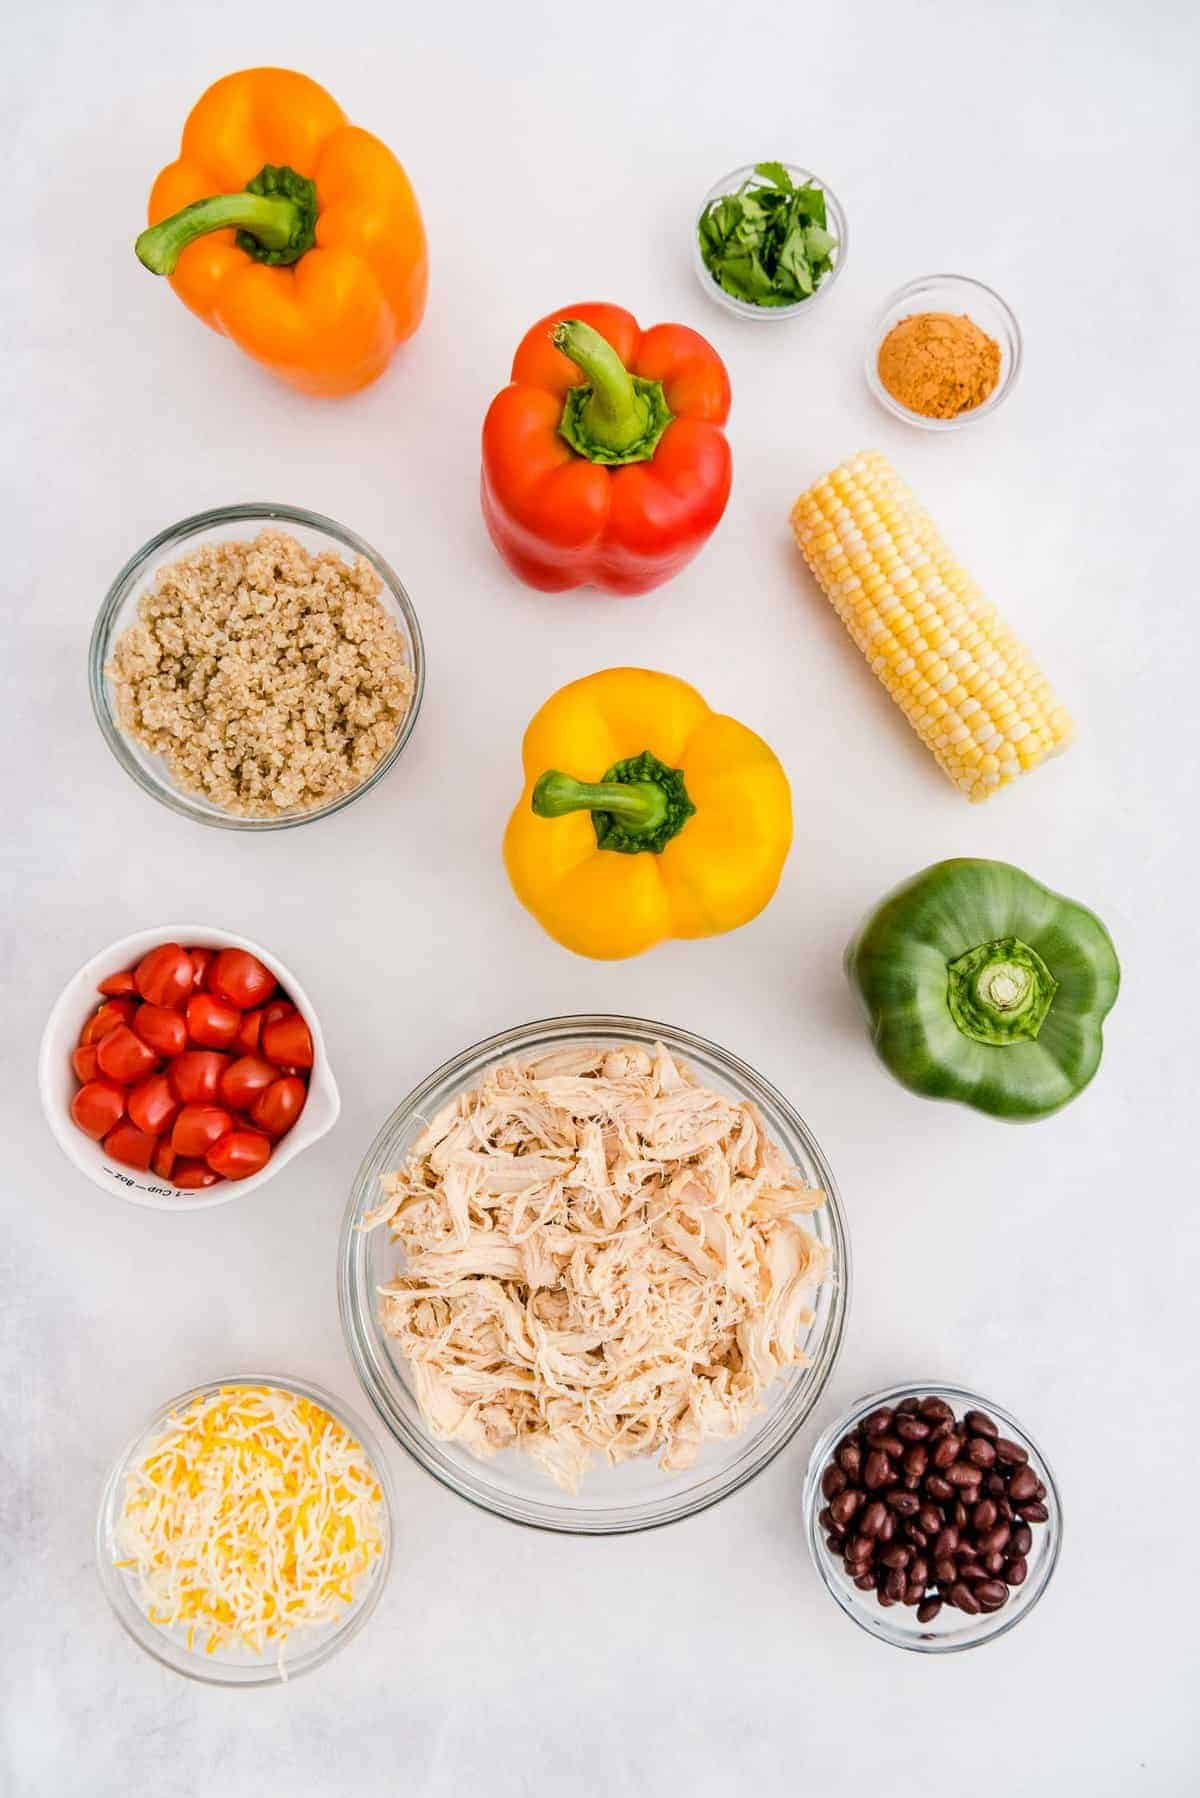 Overhead view of ingredients needed to make stuffed peppers: peppers, chicken, beans, and more.